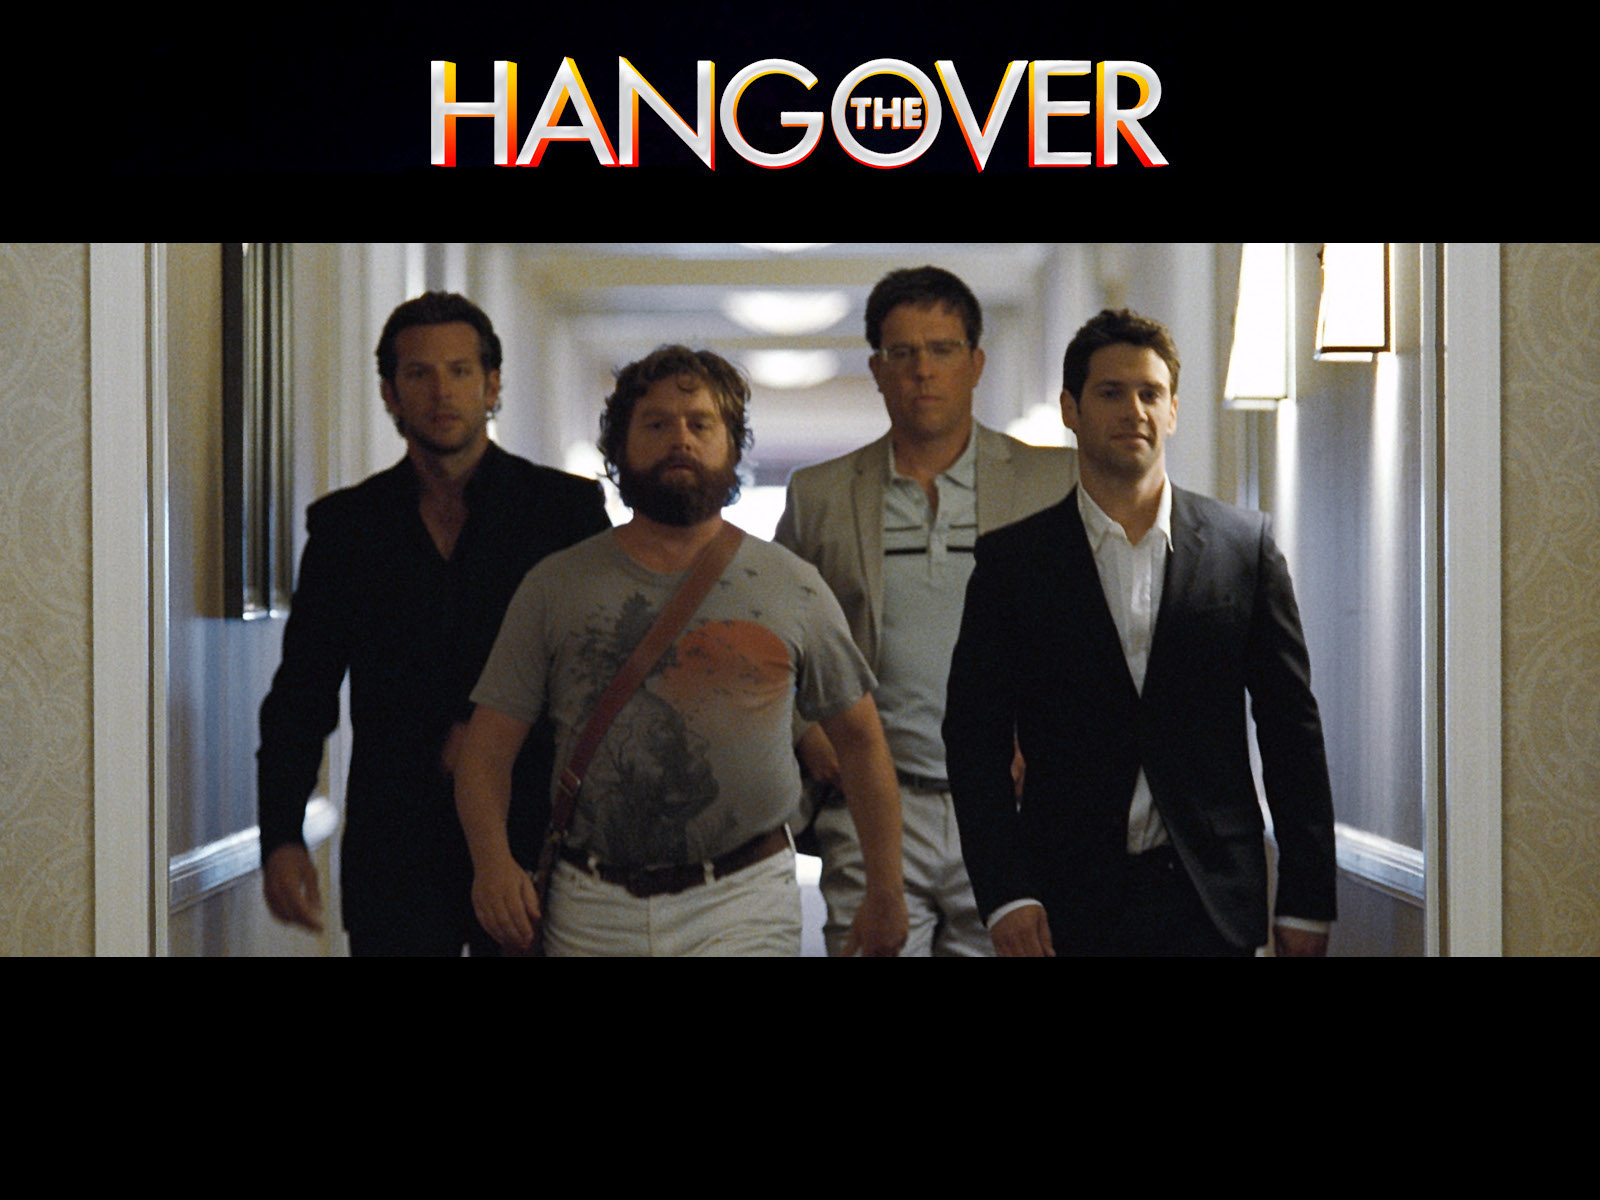 I Have A Hangover